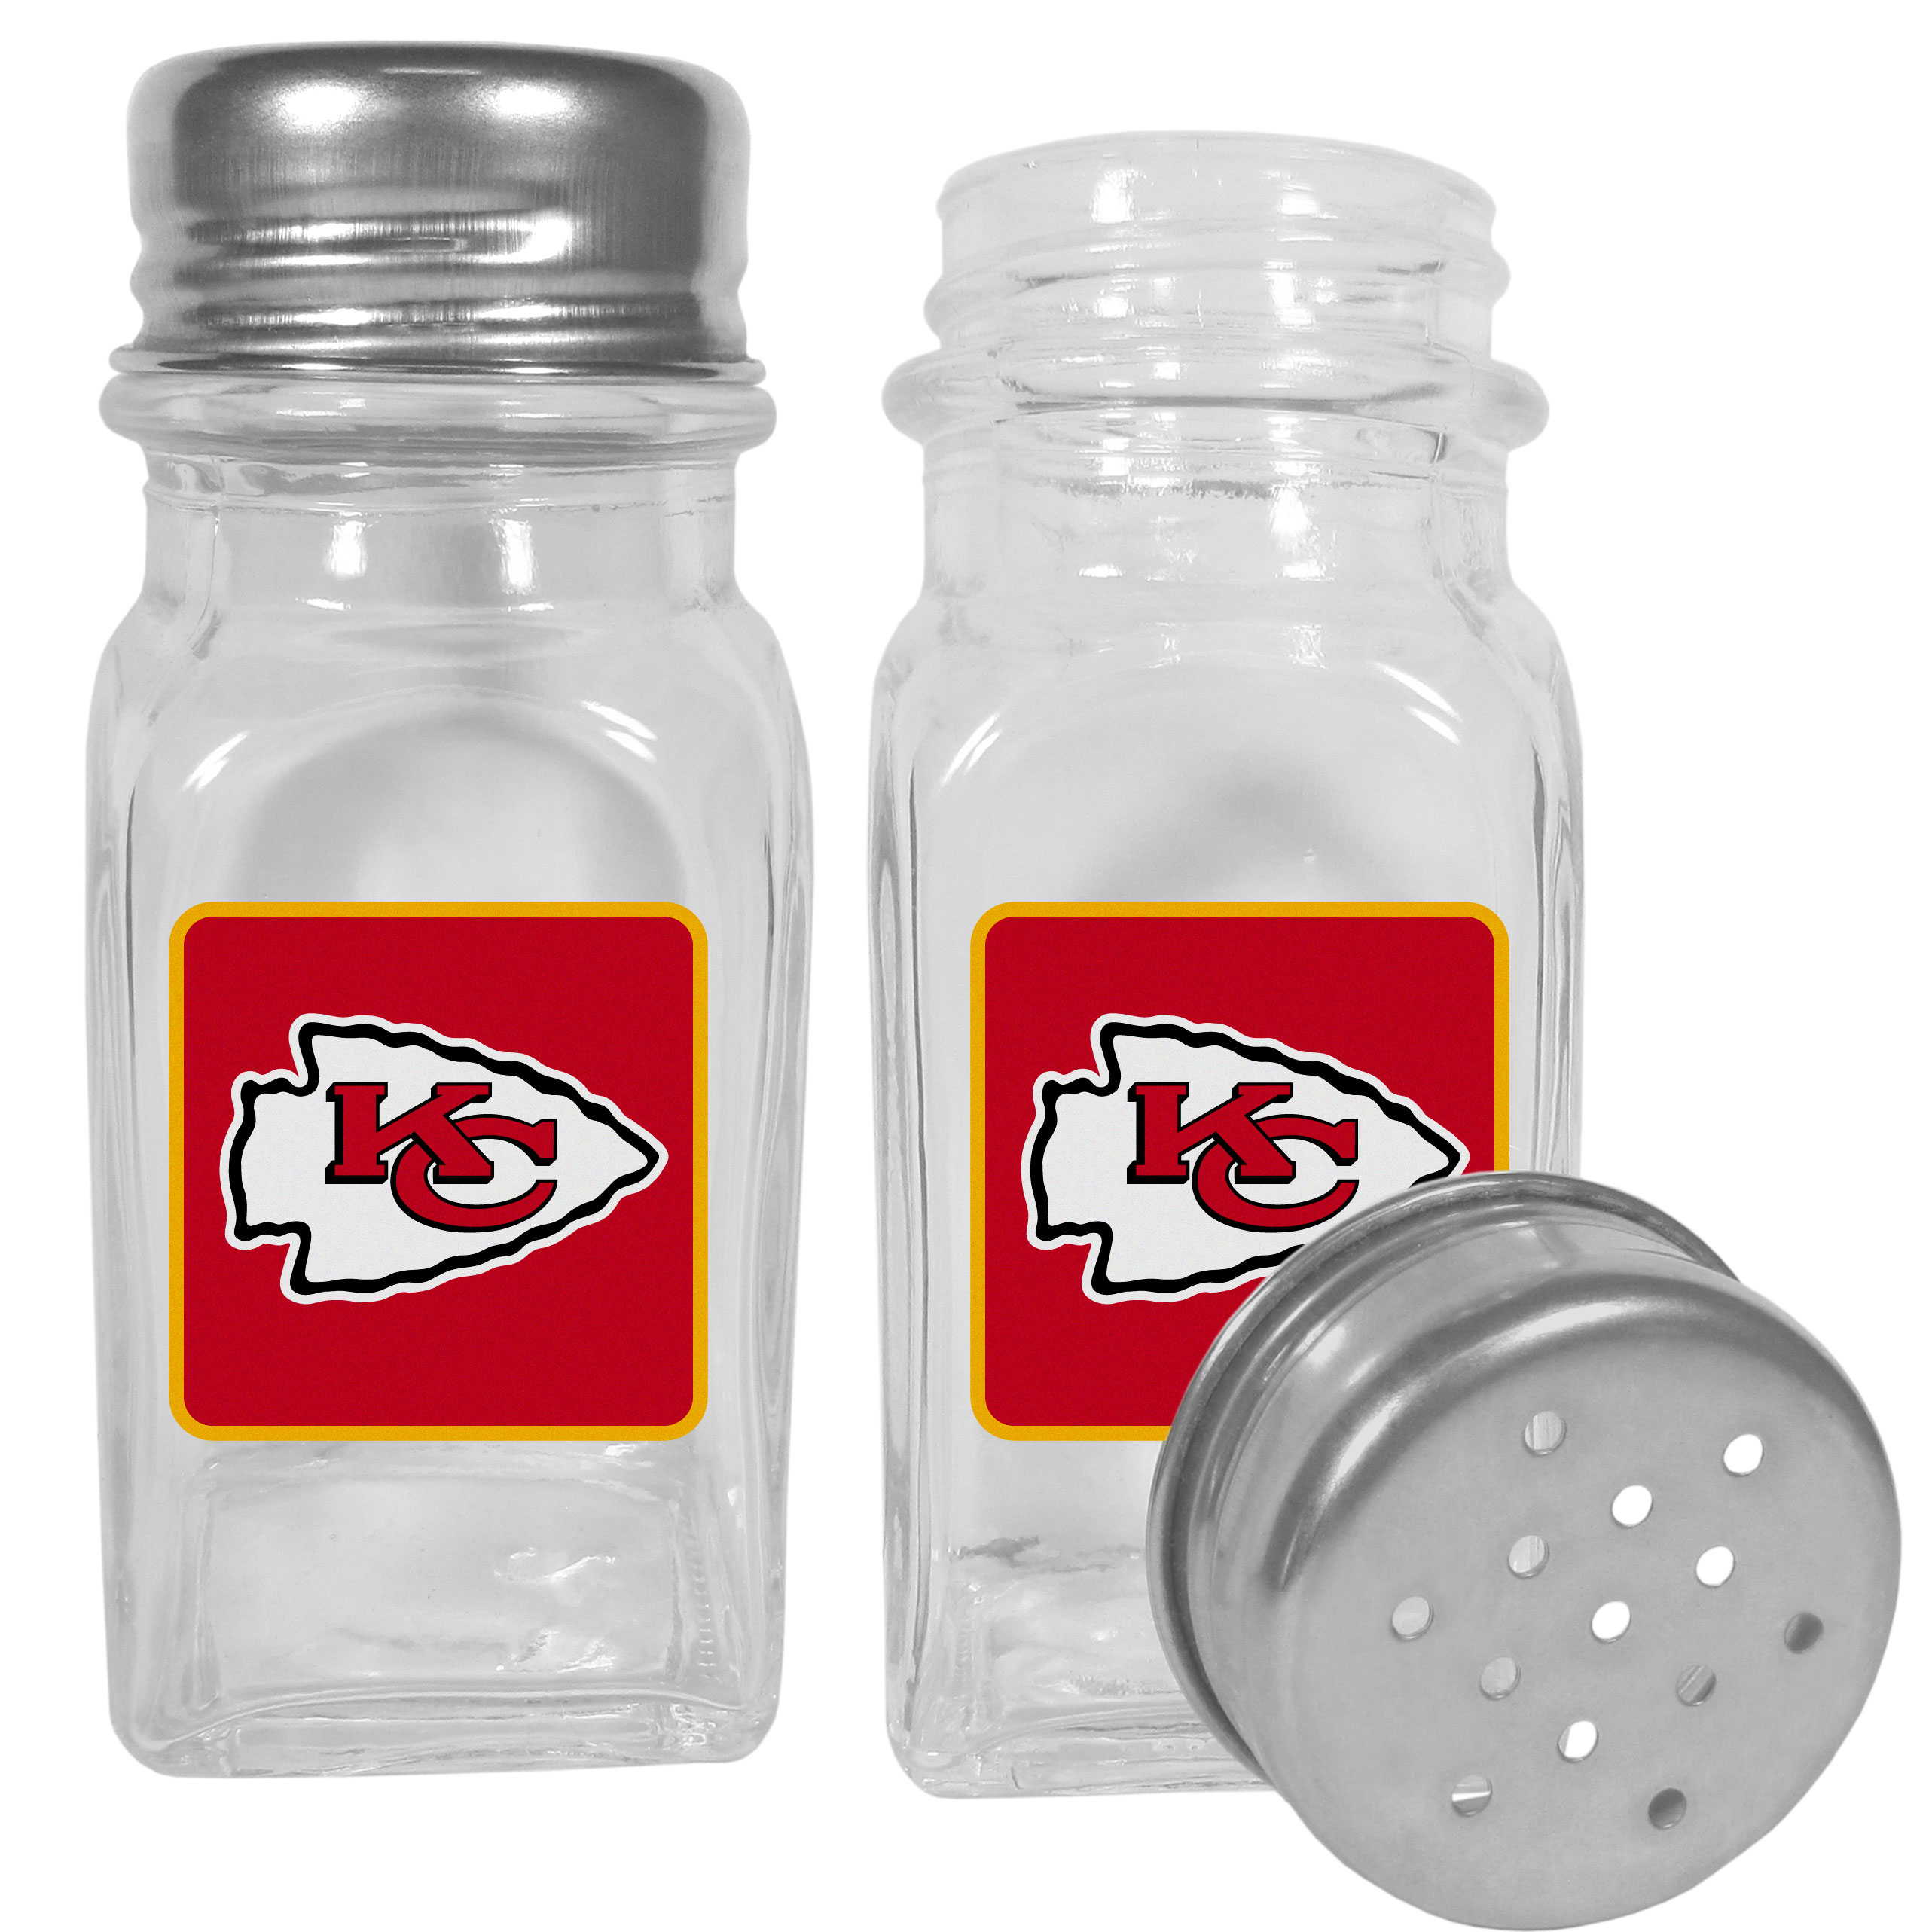 Kansas City Chiefs Graphics Salt and Pepper Shaker - No tailgate party is complete without your Kansas City Chiefs salt & pepper shakers featuring bright team logos. The diner replica salt and pepper shakers are glass with screw top lids. These team shakers are a great grill accessory whether you are barbecuing on the patio, picnicing or having a game day party.